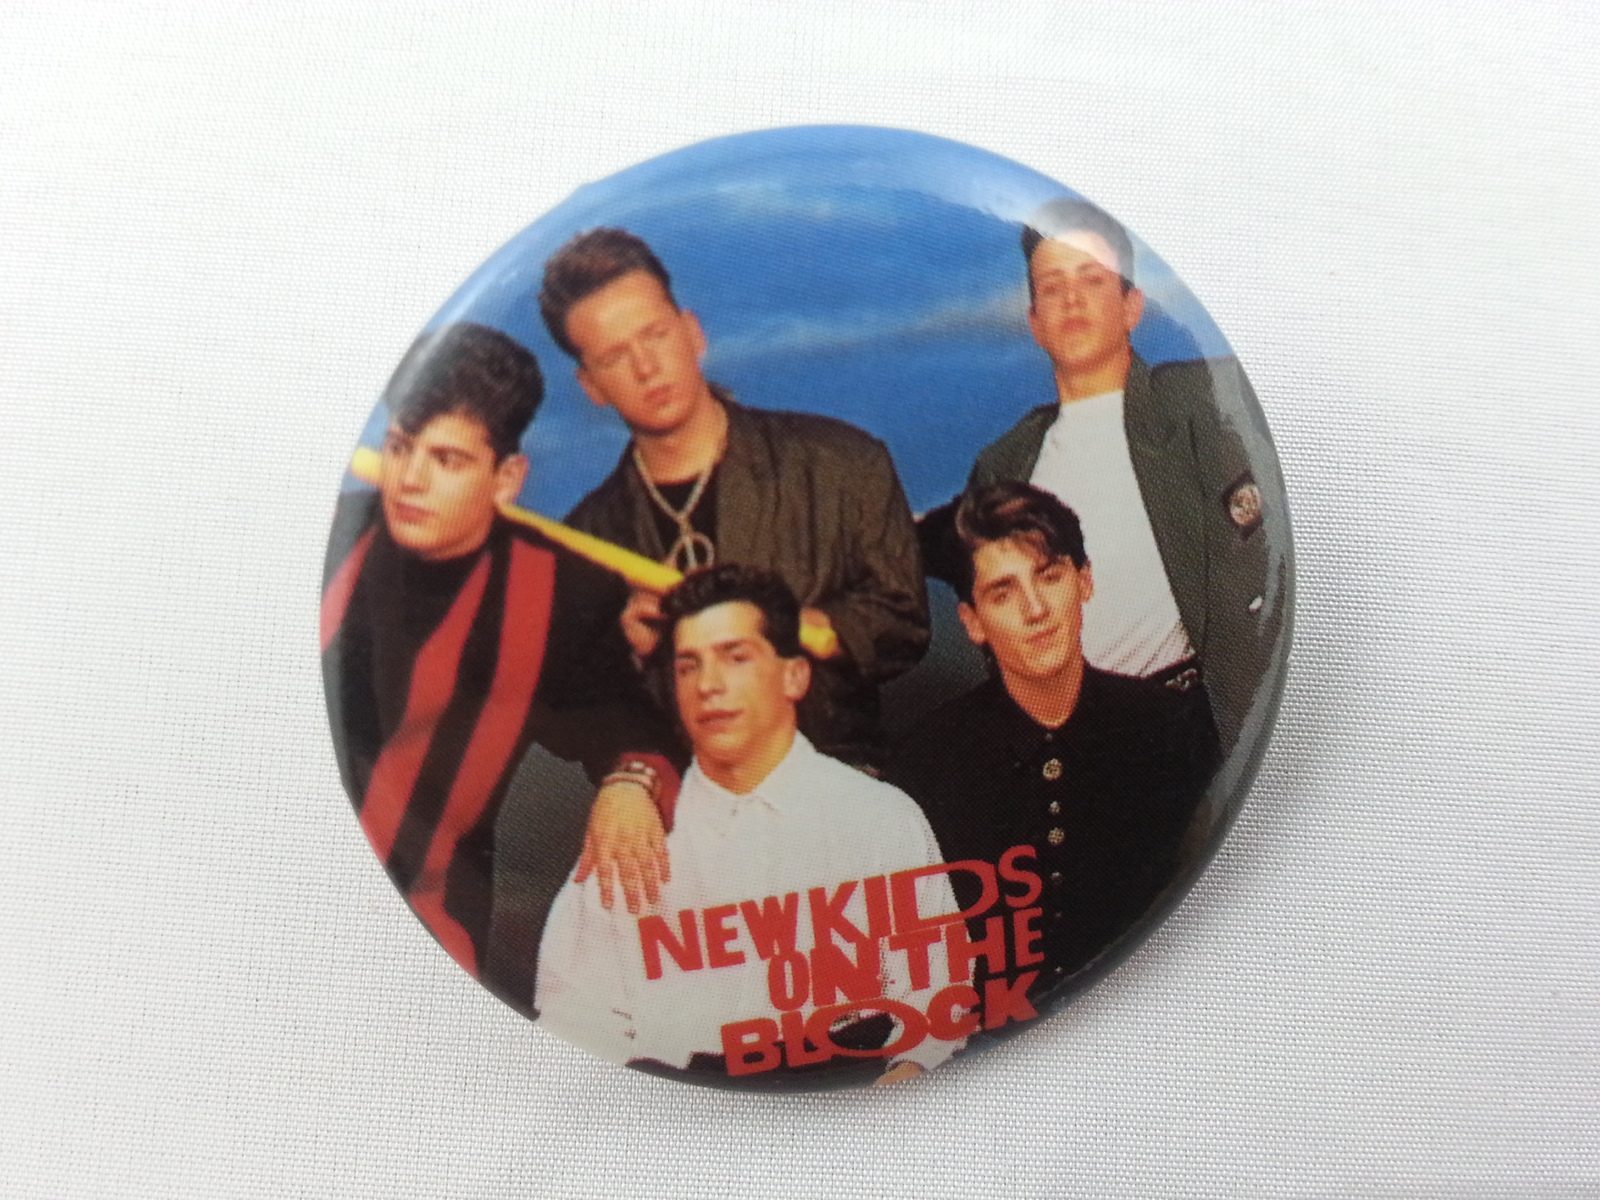 Retro New Kids on the Block Button - Featuring the Entire Group - Prepped Out !